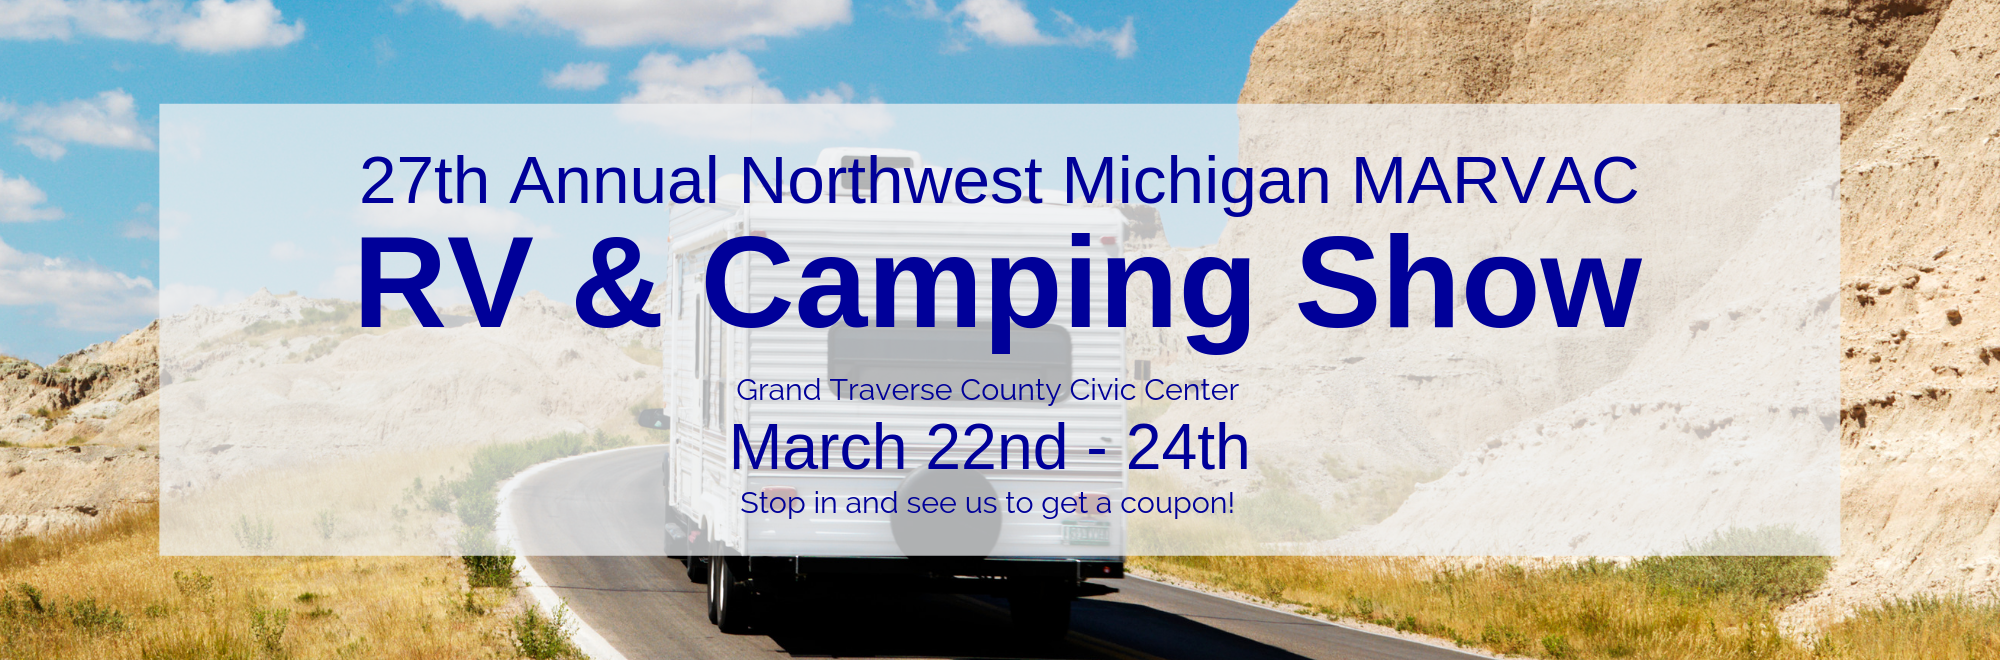 Stop in to see us for a coupon for the RV & Camping Show March 22 - 24